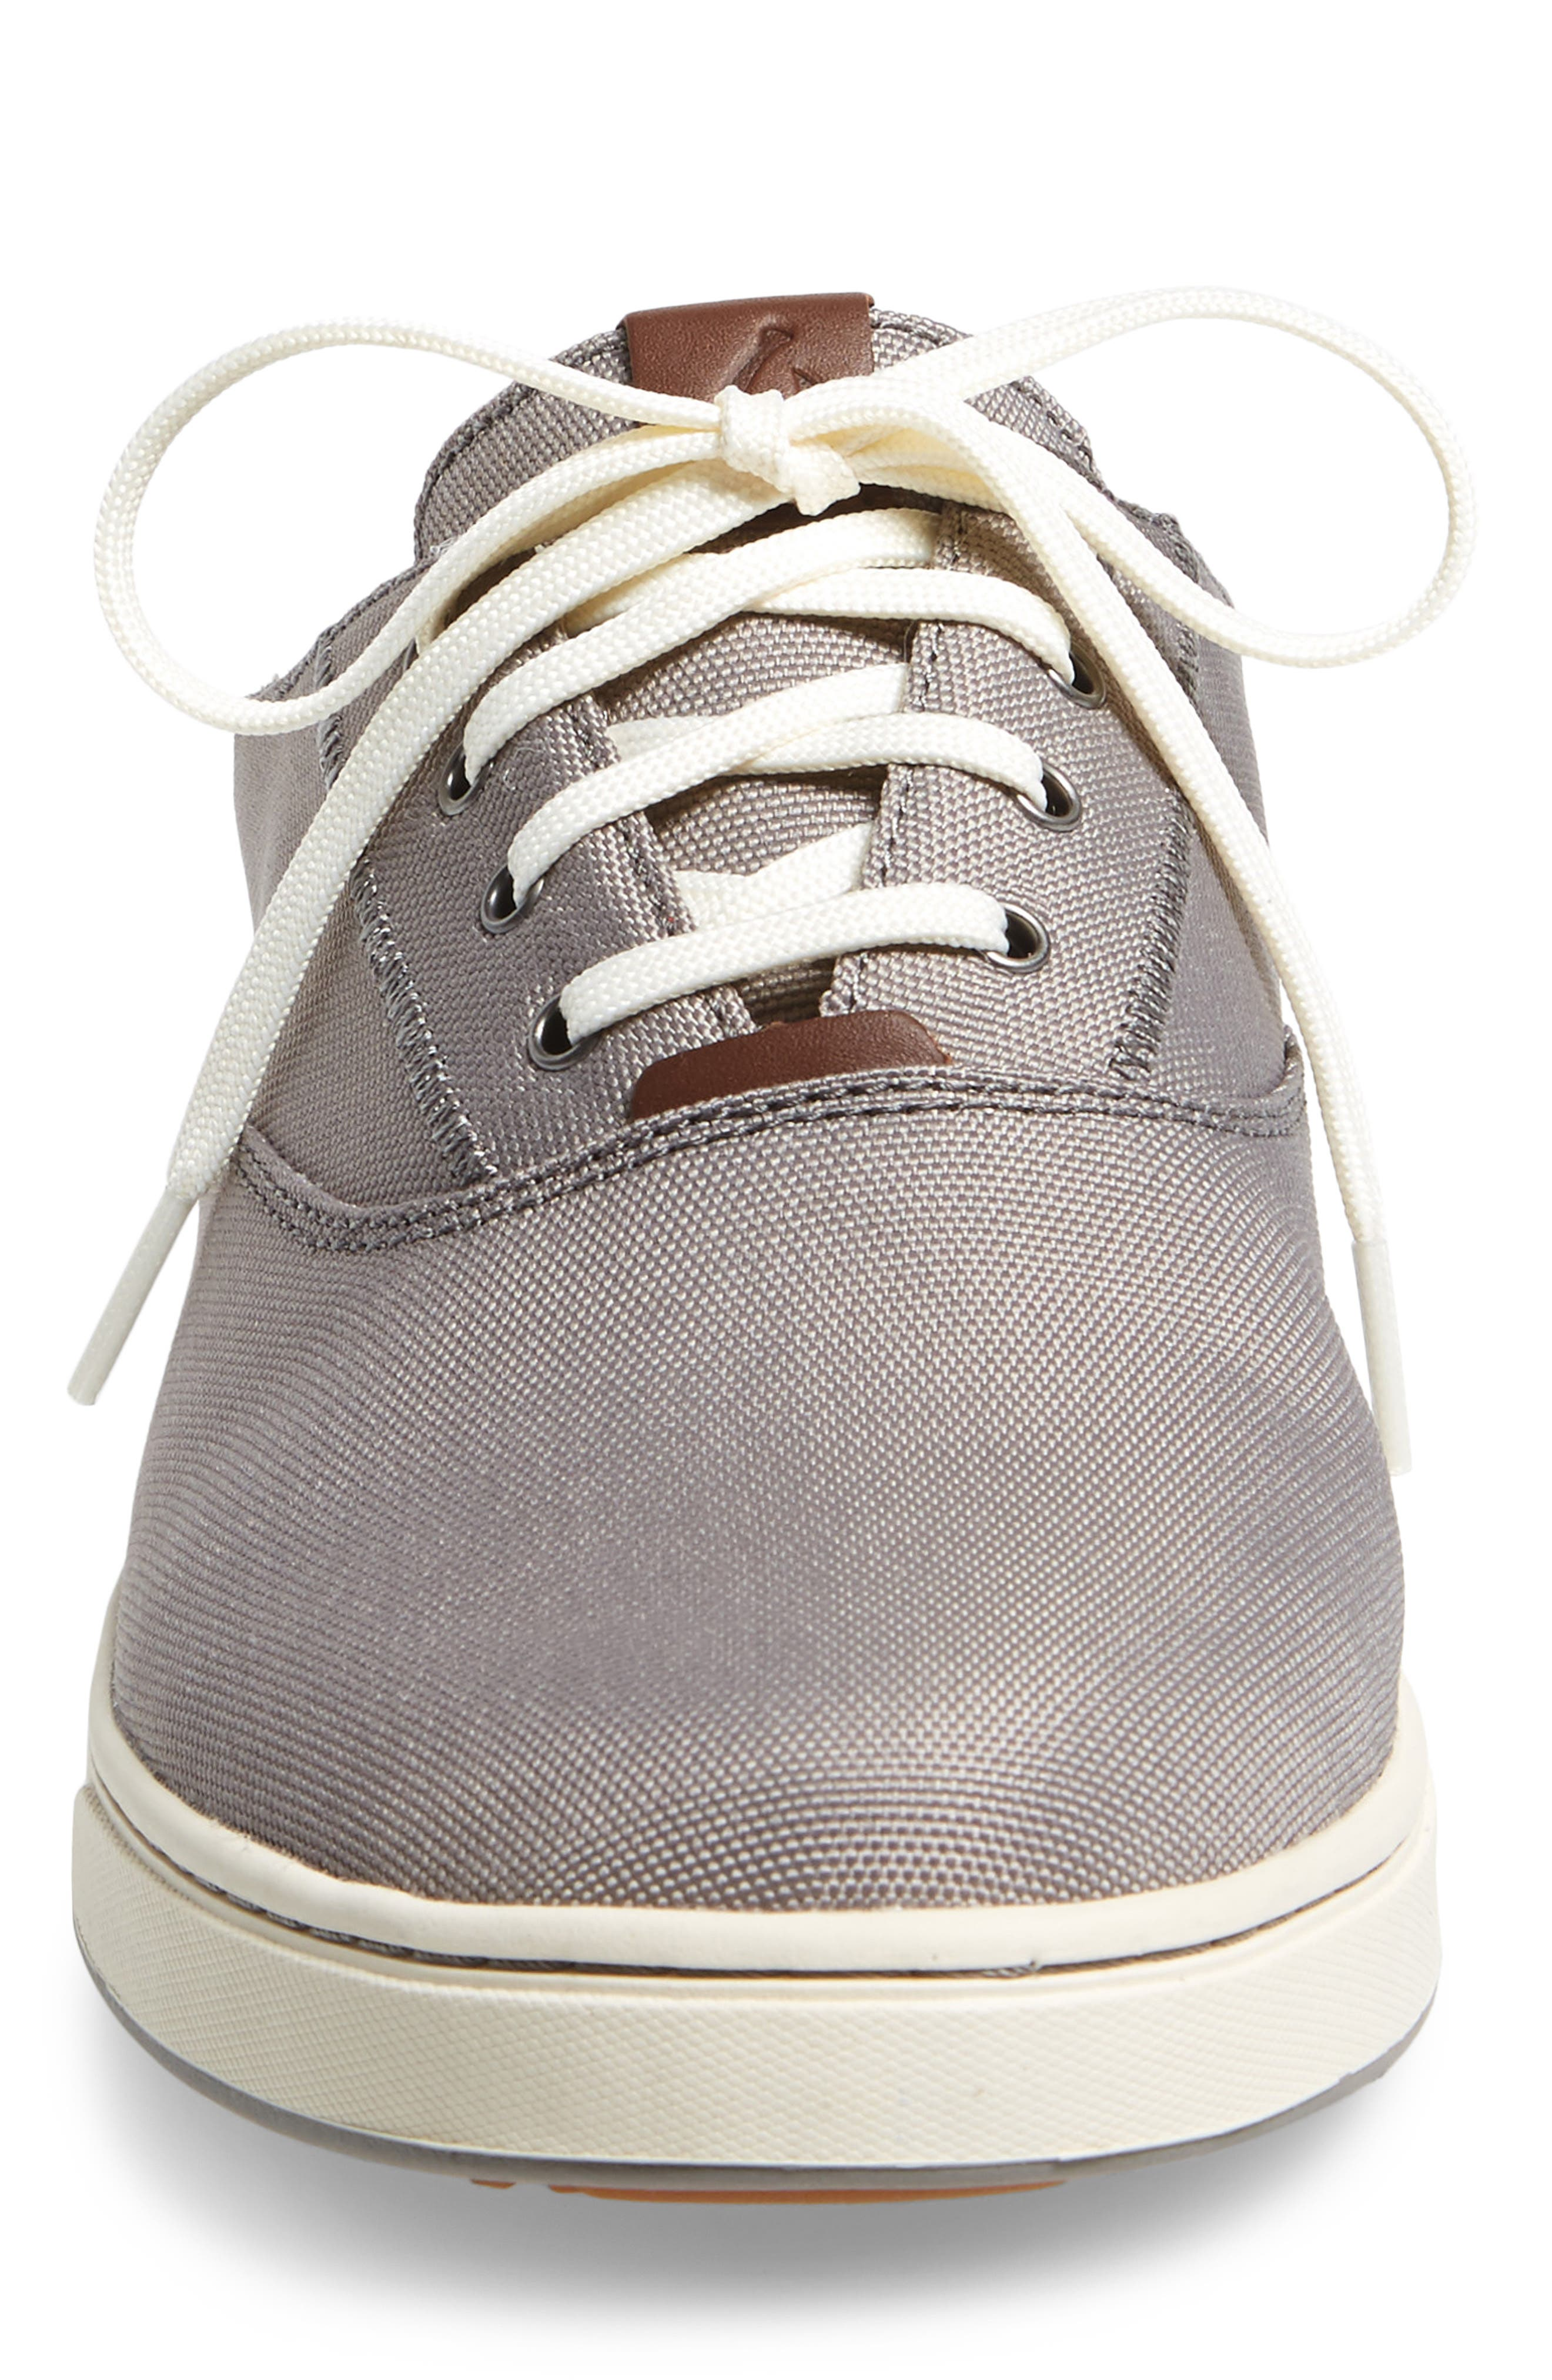 Kahu Collapsible Lace-Up Sneaker,                             Alternate thumbnail 5, color,                             055